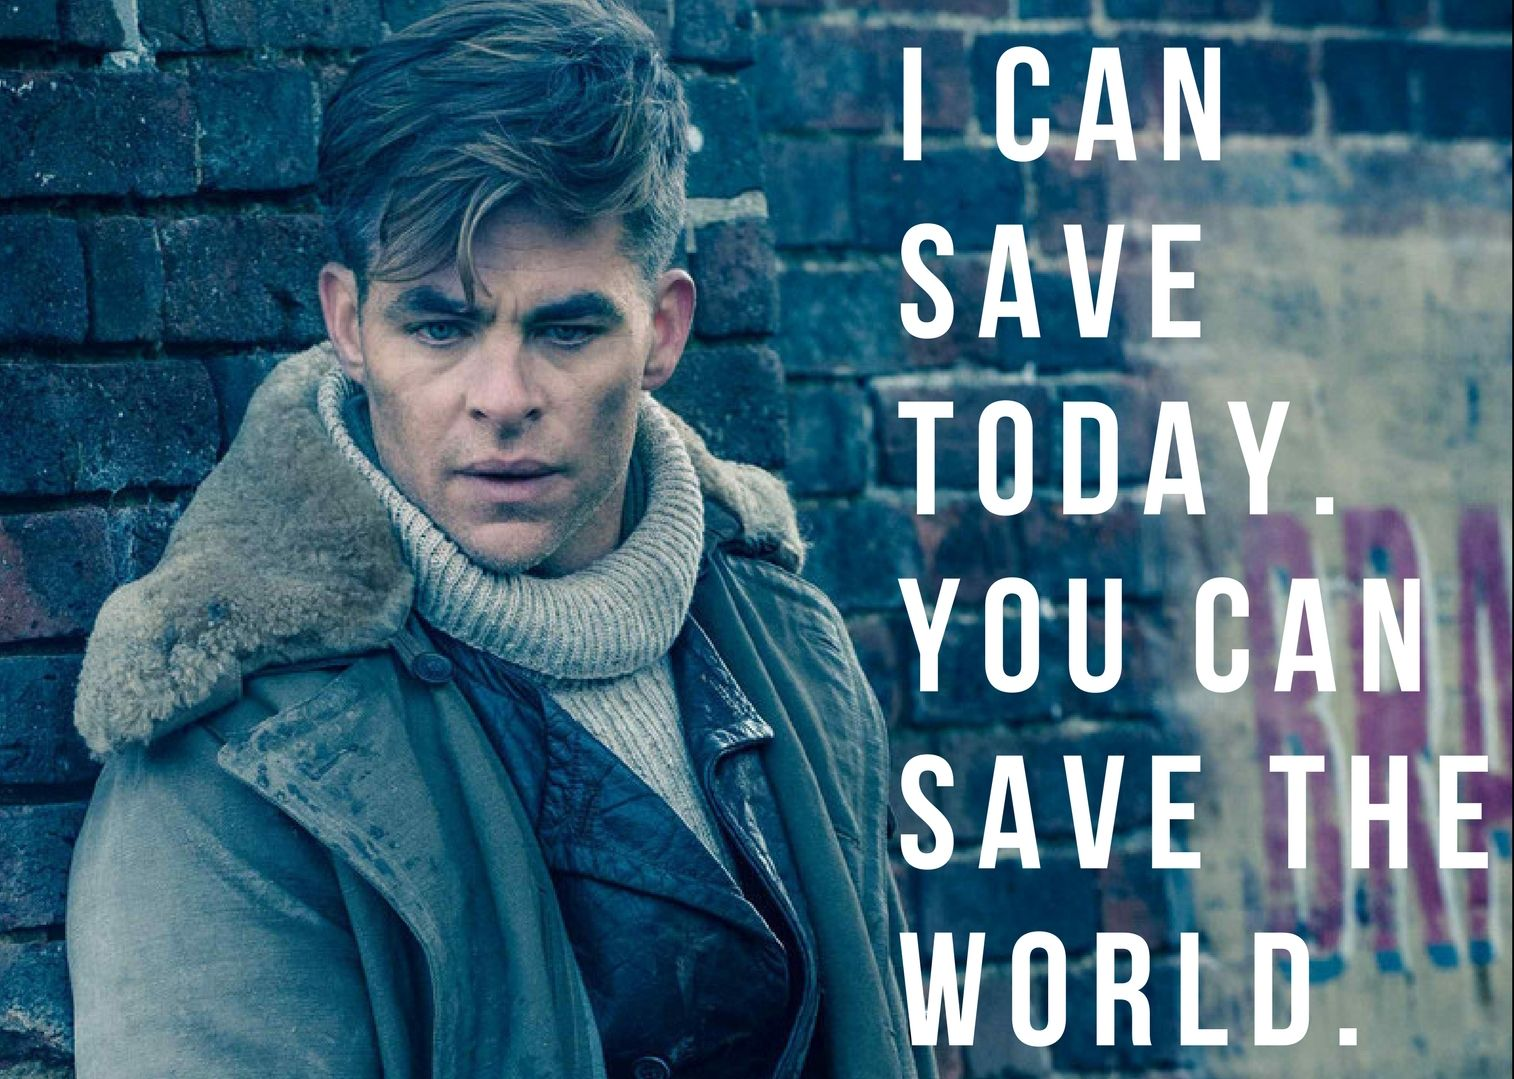 I Can Save Today You Can Save The World Steve Trevor Chrispine Wonderwoman Stevetrevor Quotes Inspirational Dccomics Words Movie Quotes Words I Can